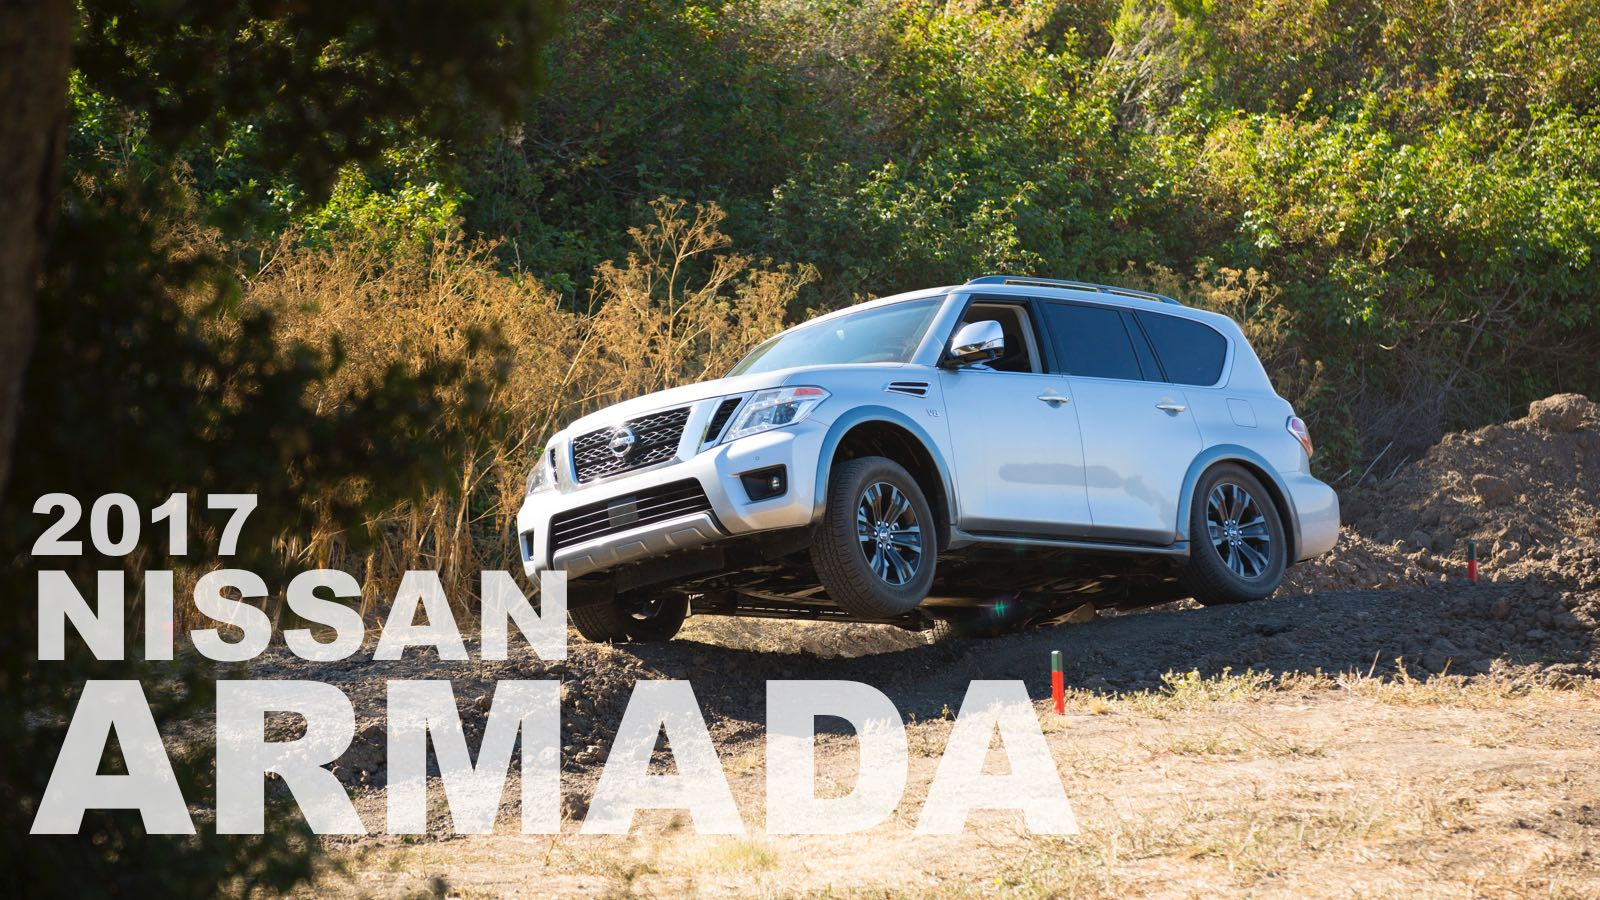 What Floats Your Boat? Nissan's New Armada Morphs From Barge to Sleek Yacht